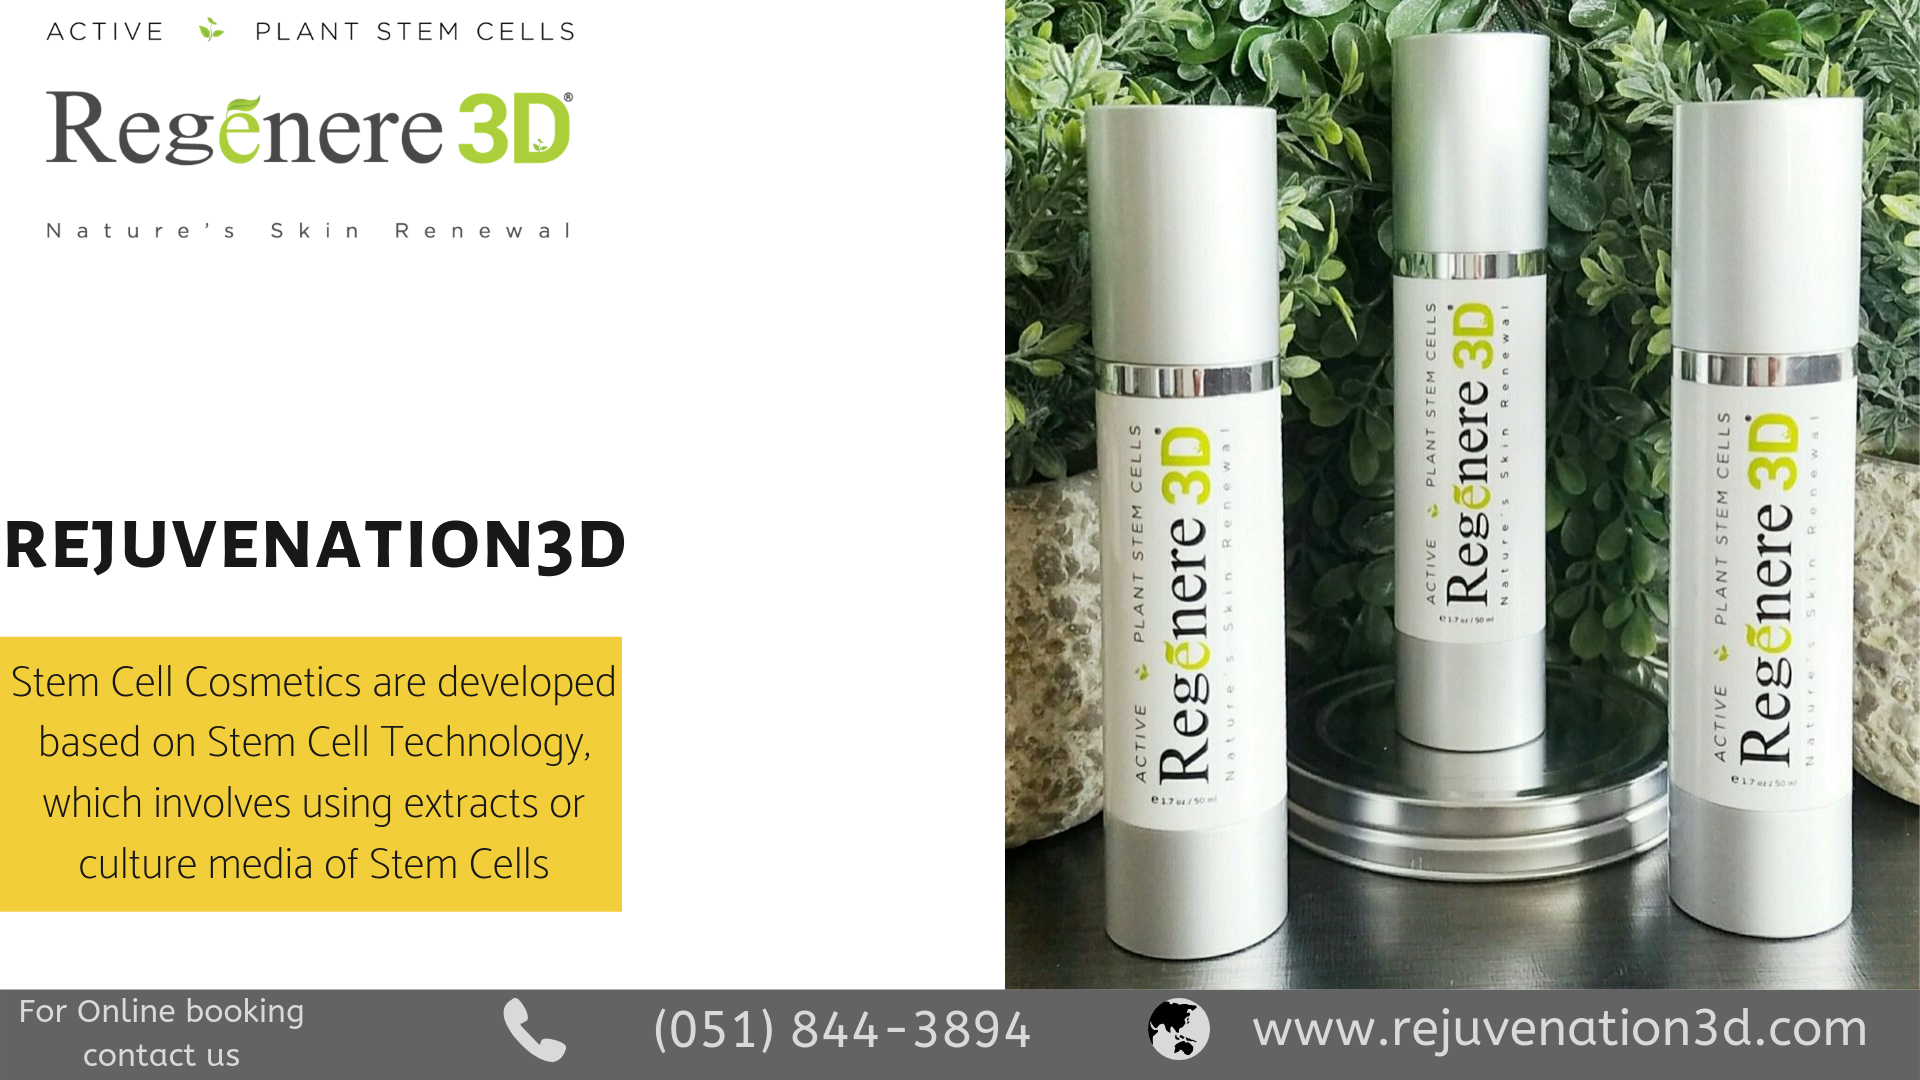 Active Plant Stem Cells To Head Your Skin Plant Stem Cell Stem Cells Skin Care